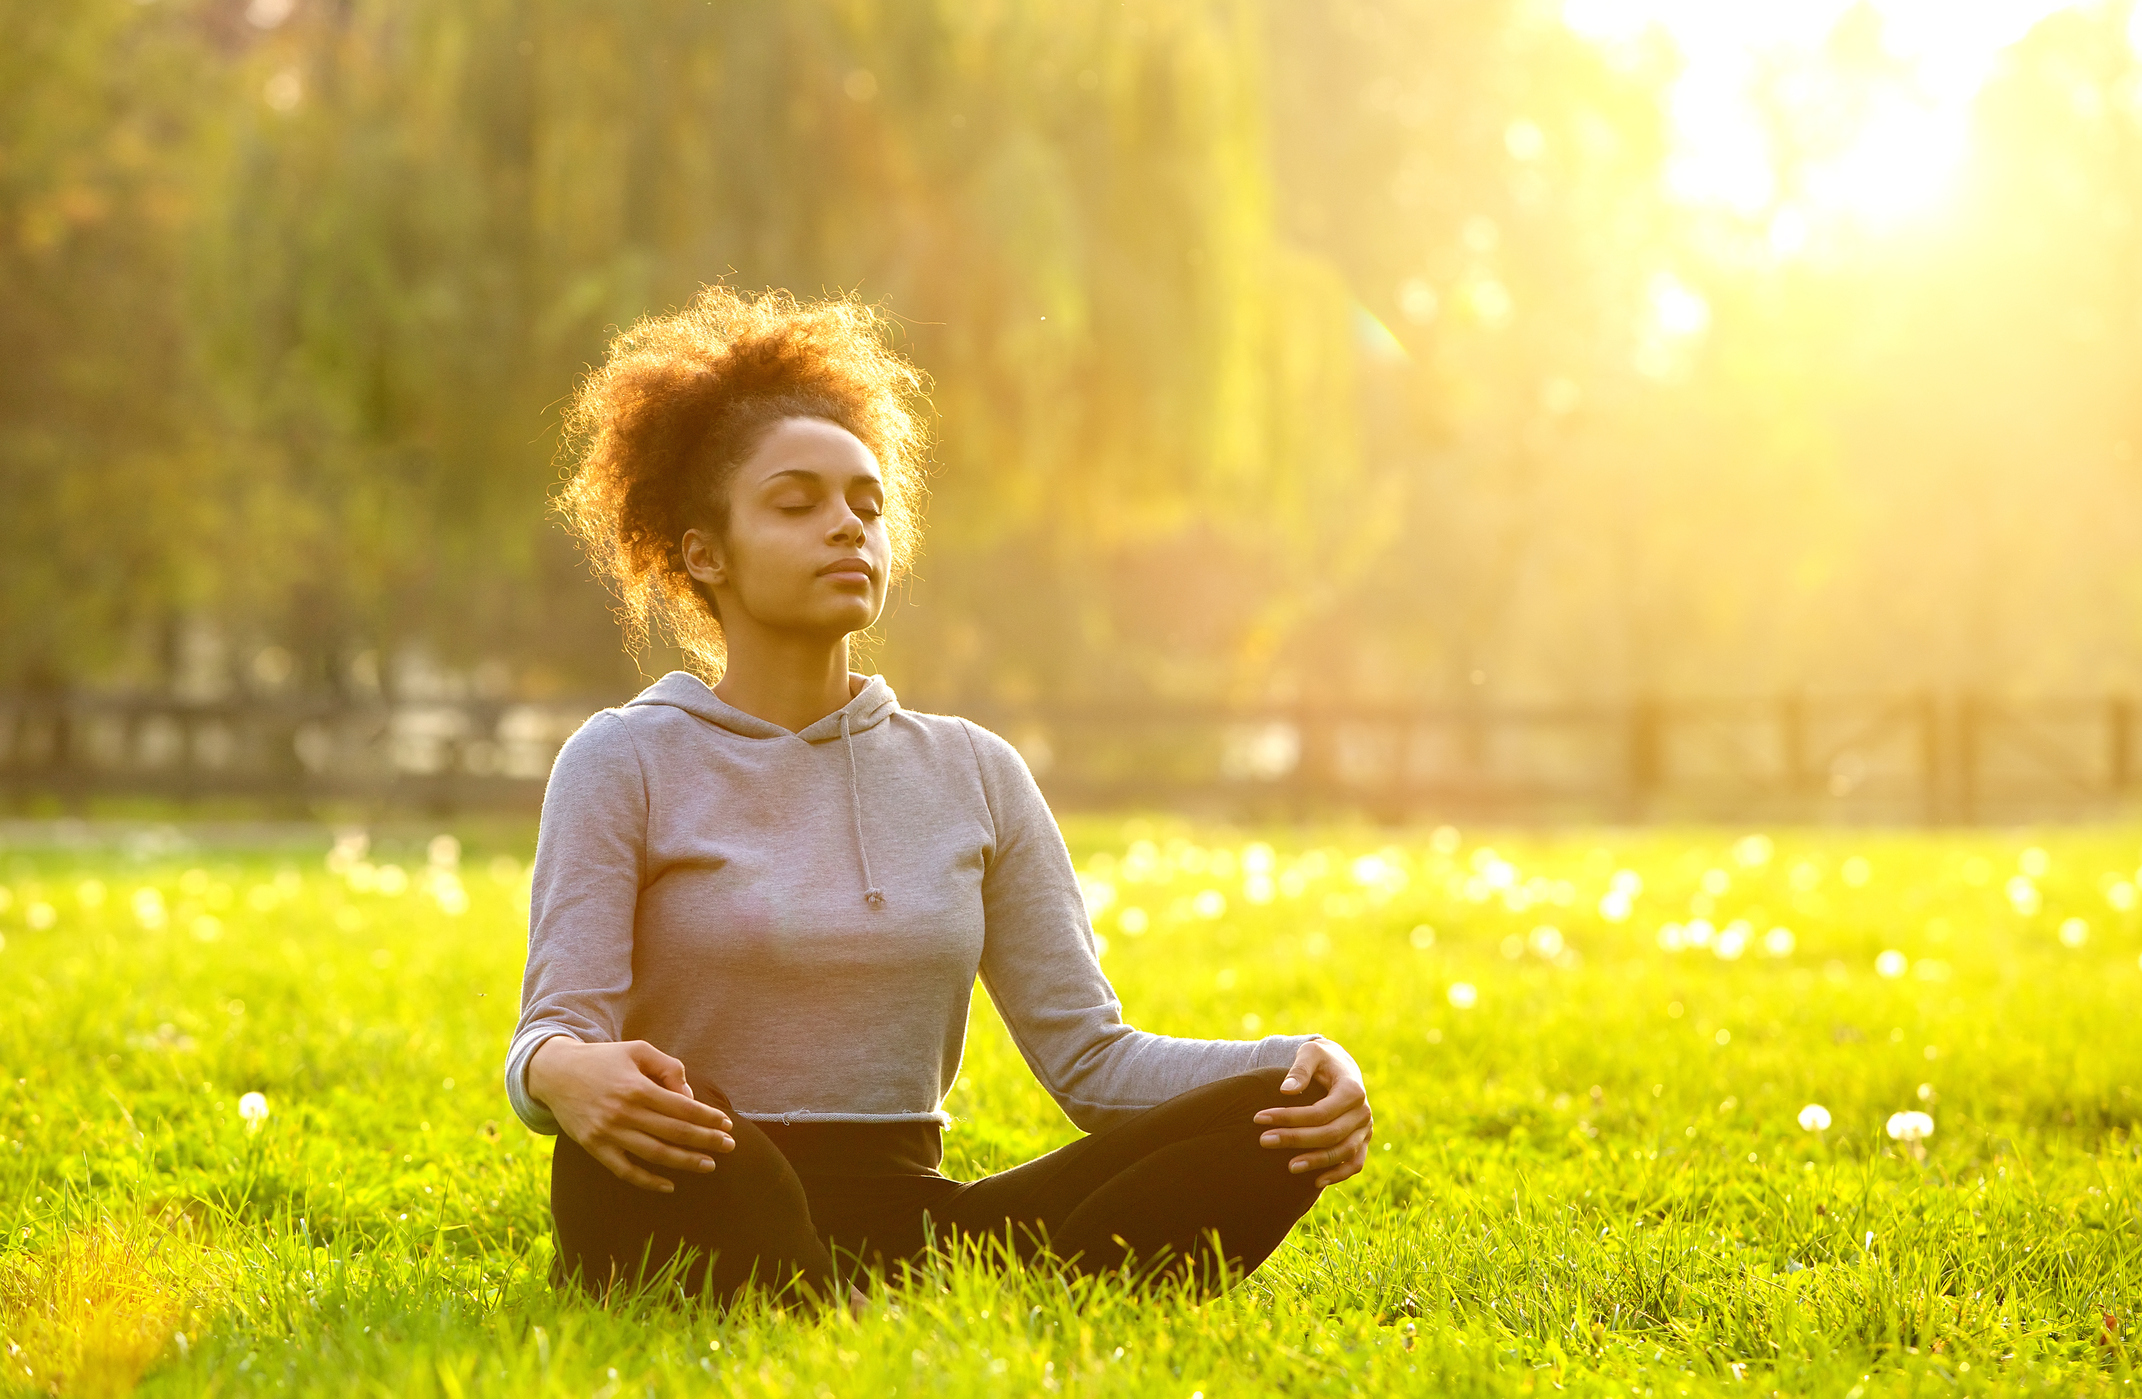 Generic photo of woman meditating outdoors (Thinkstock/PA)